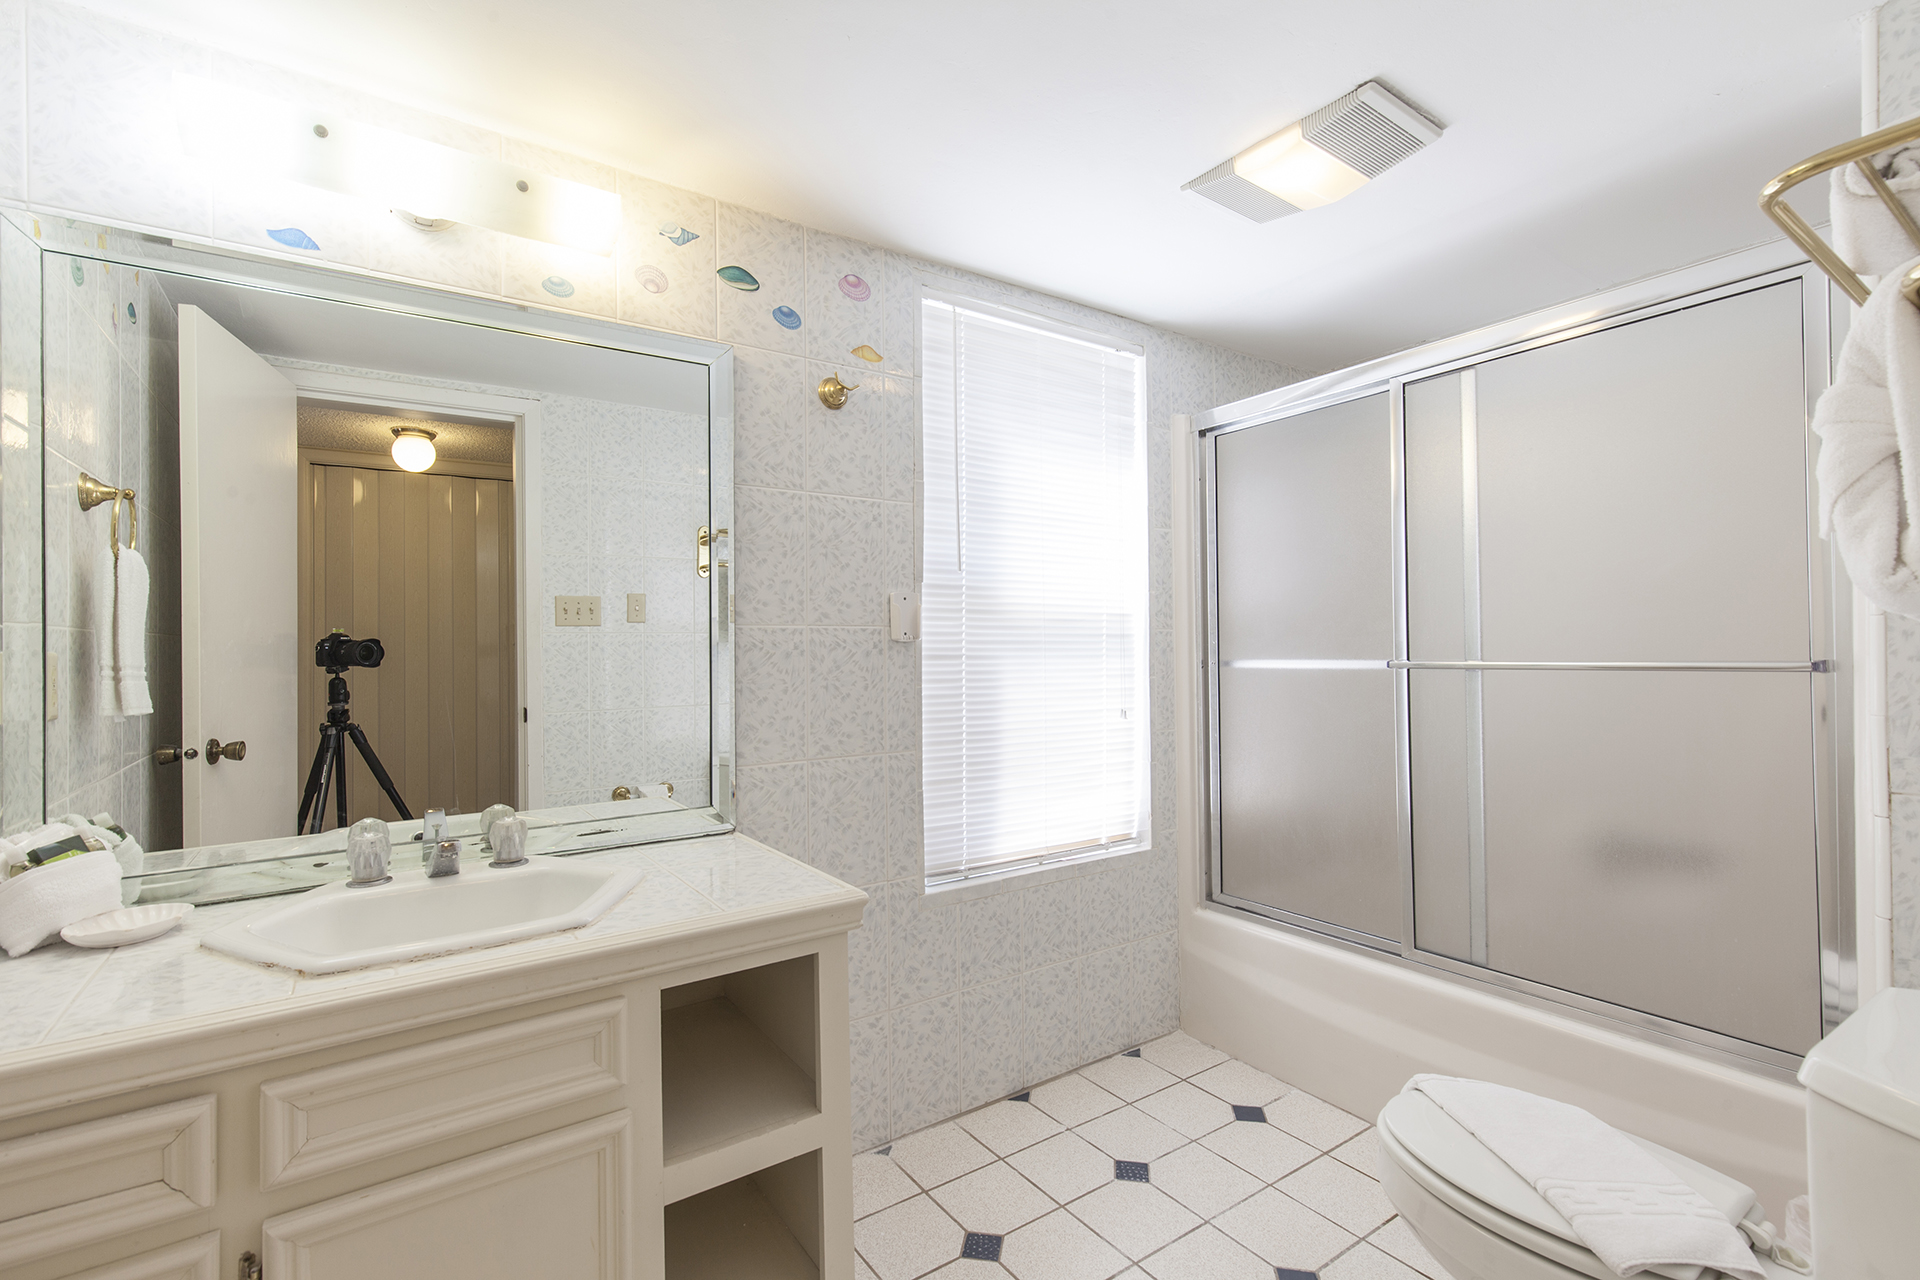 Guest bathroom with shower tub combination.